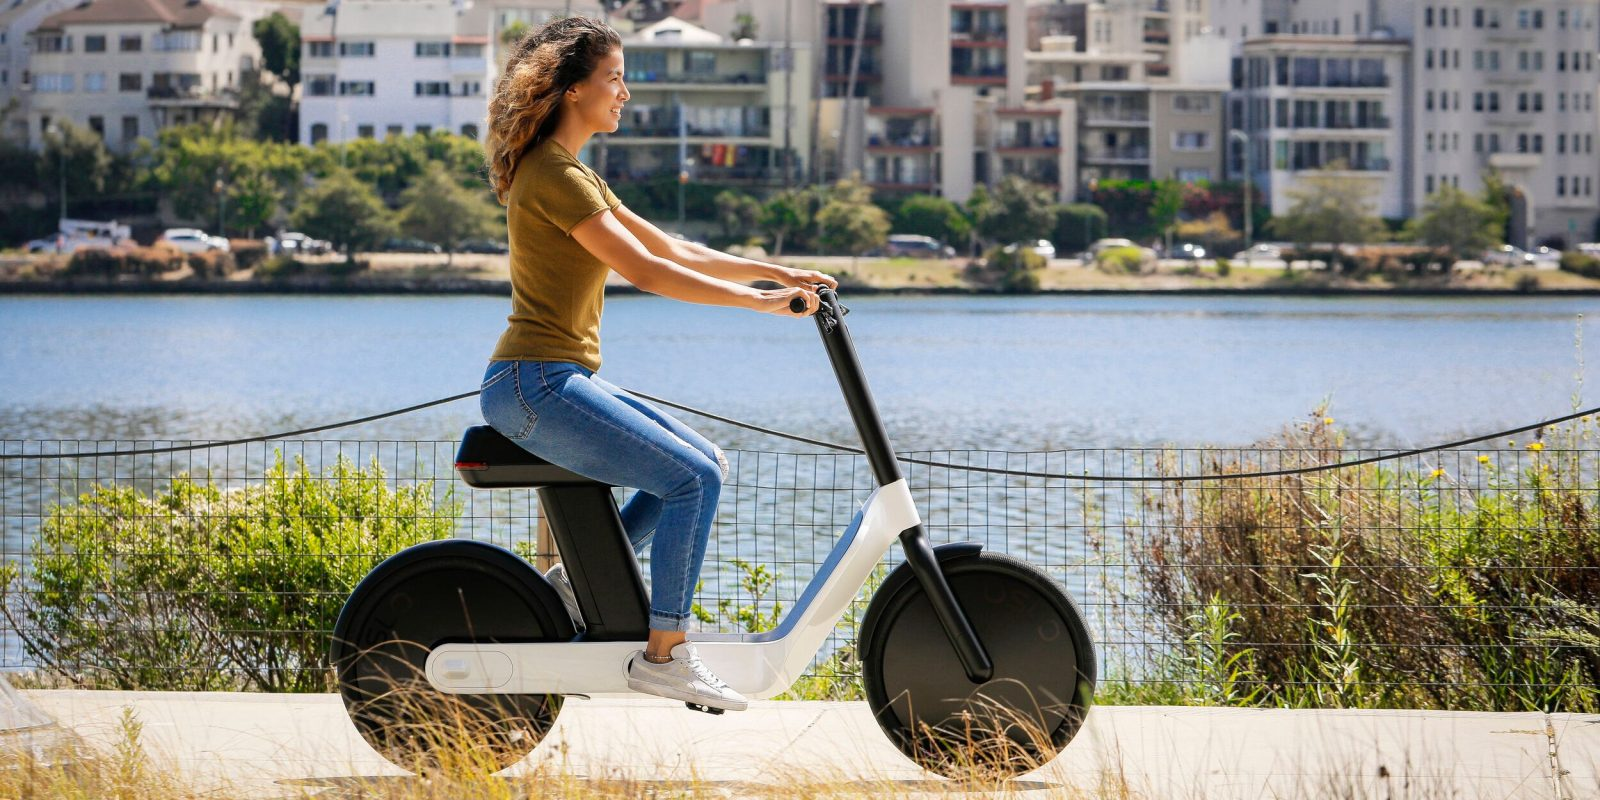 The latest shiny new $1,499 electric moped looks straight out of the future